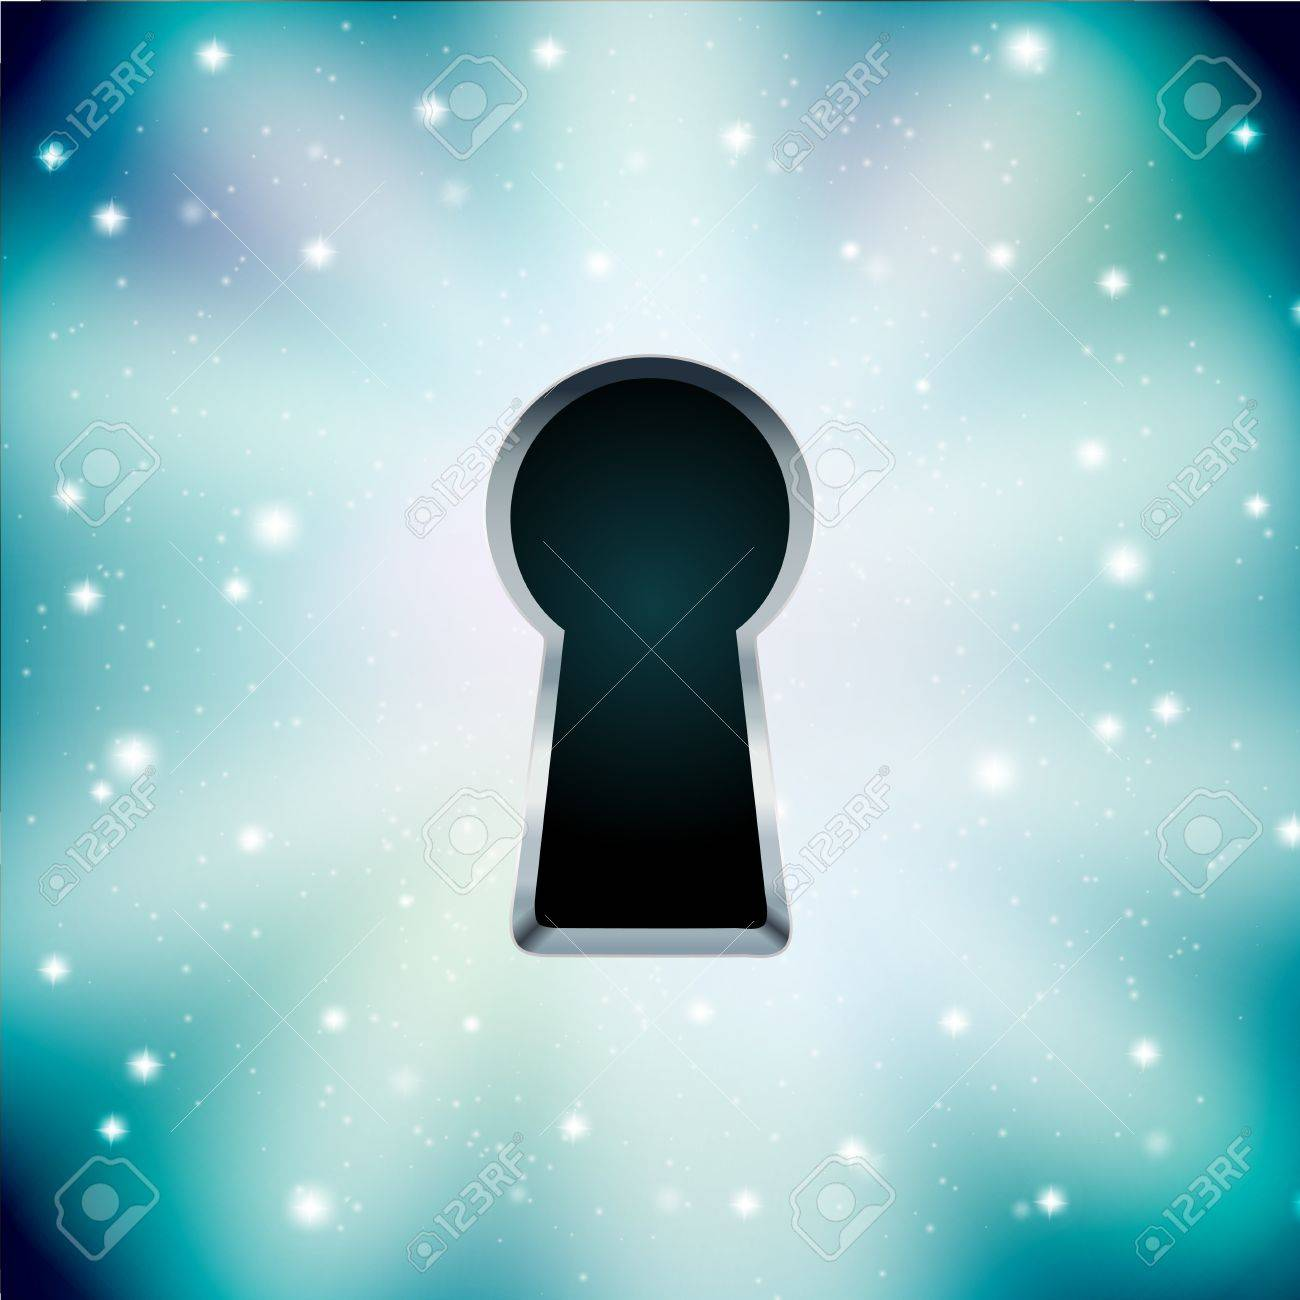 concept of key hole on starry background Stock Vector - 18246454